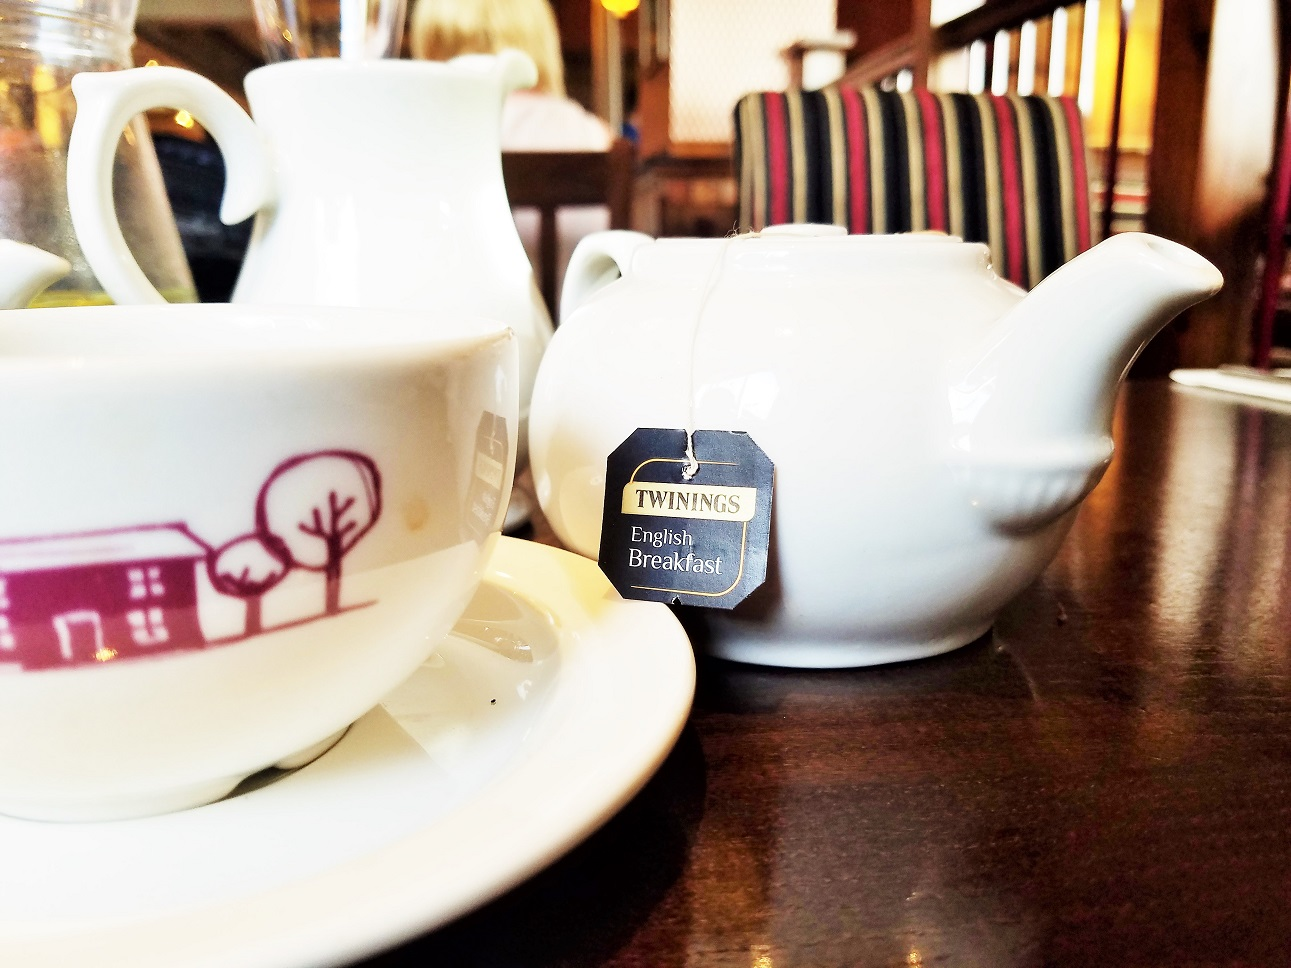 Yorkshire Afternoon Tea - Twinings Tea in a teapot